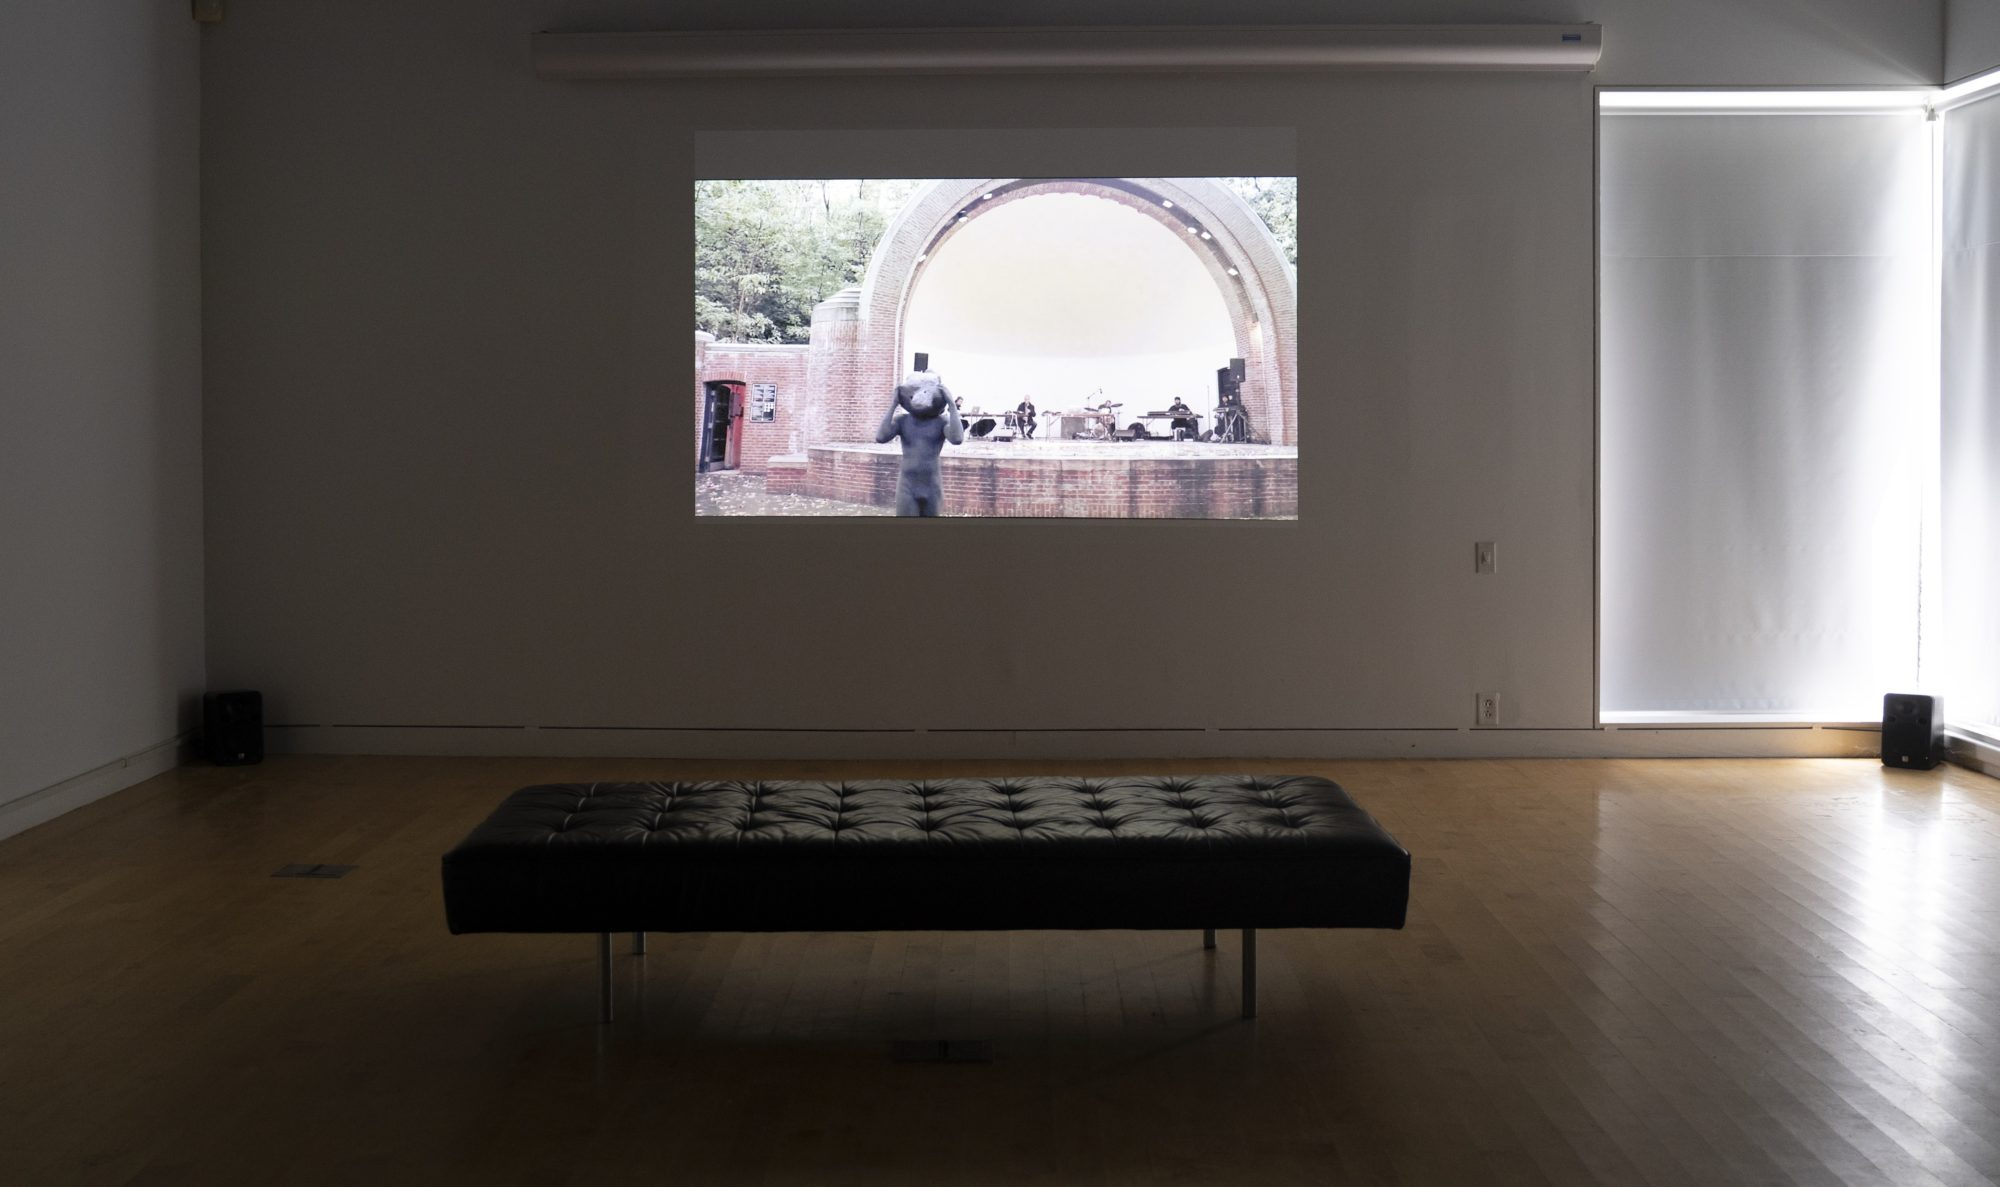 Projection of performance video on wall with black bench in front.